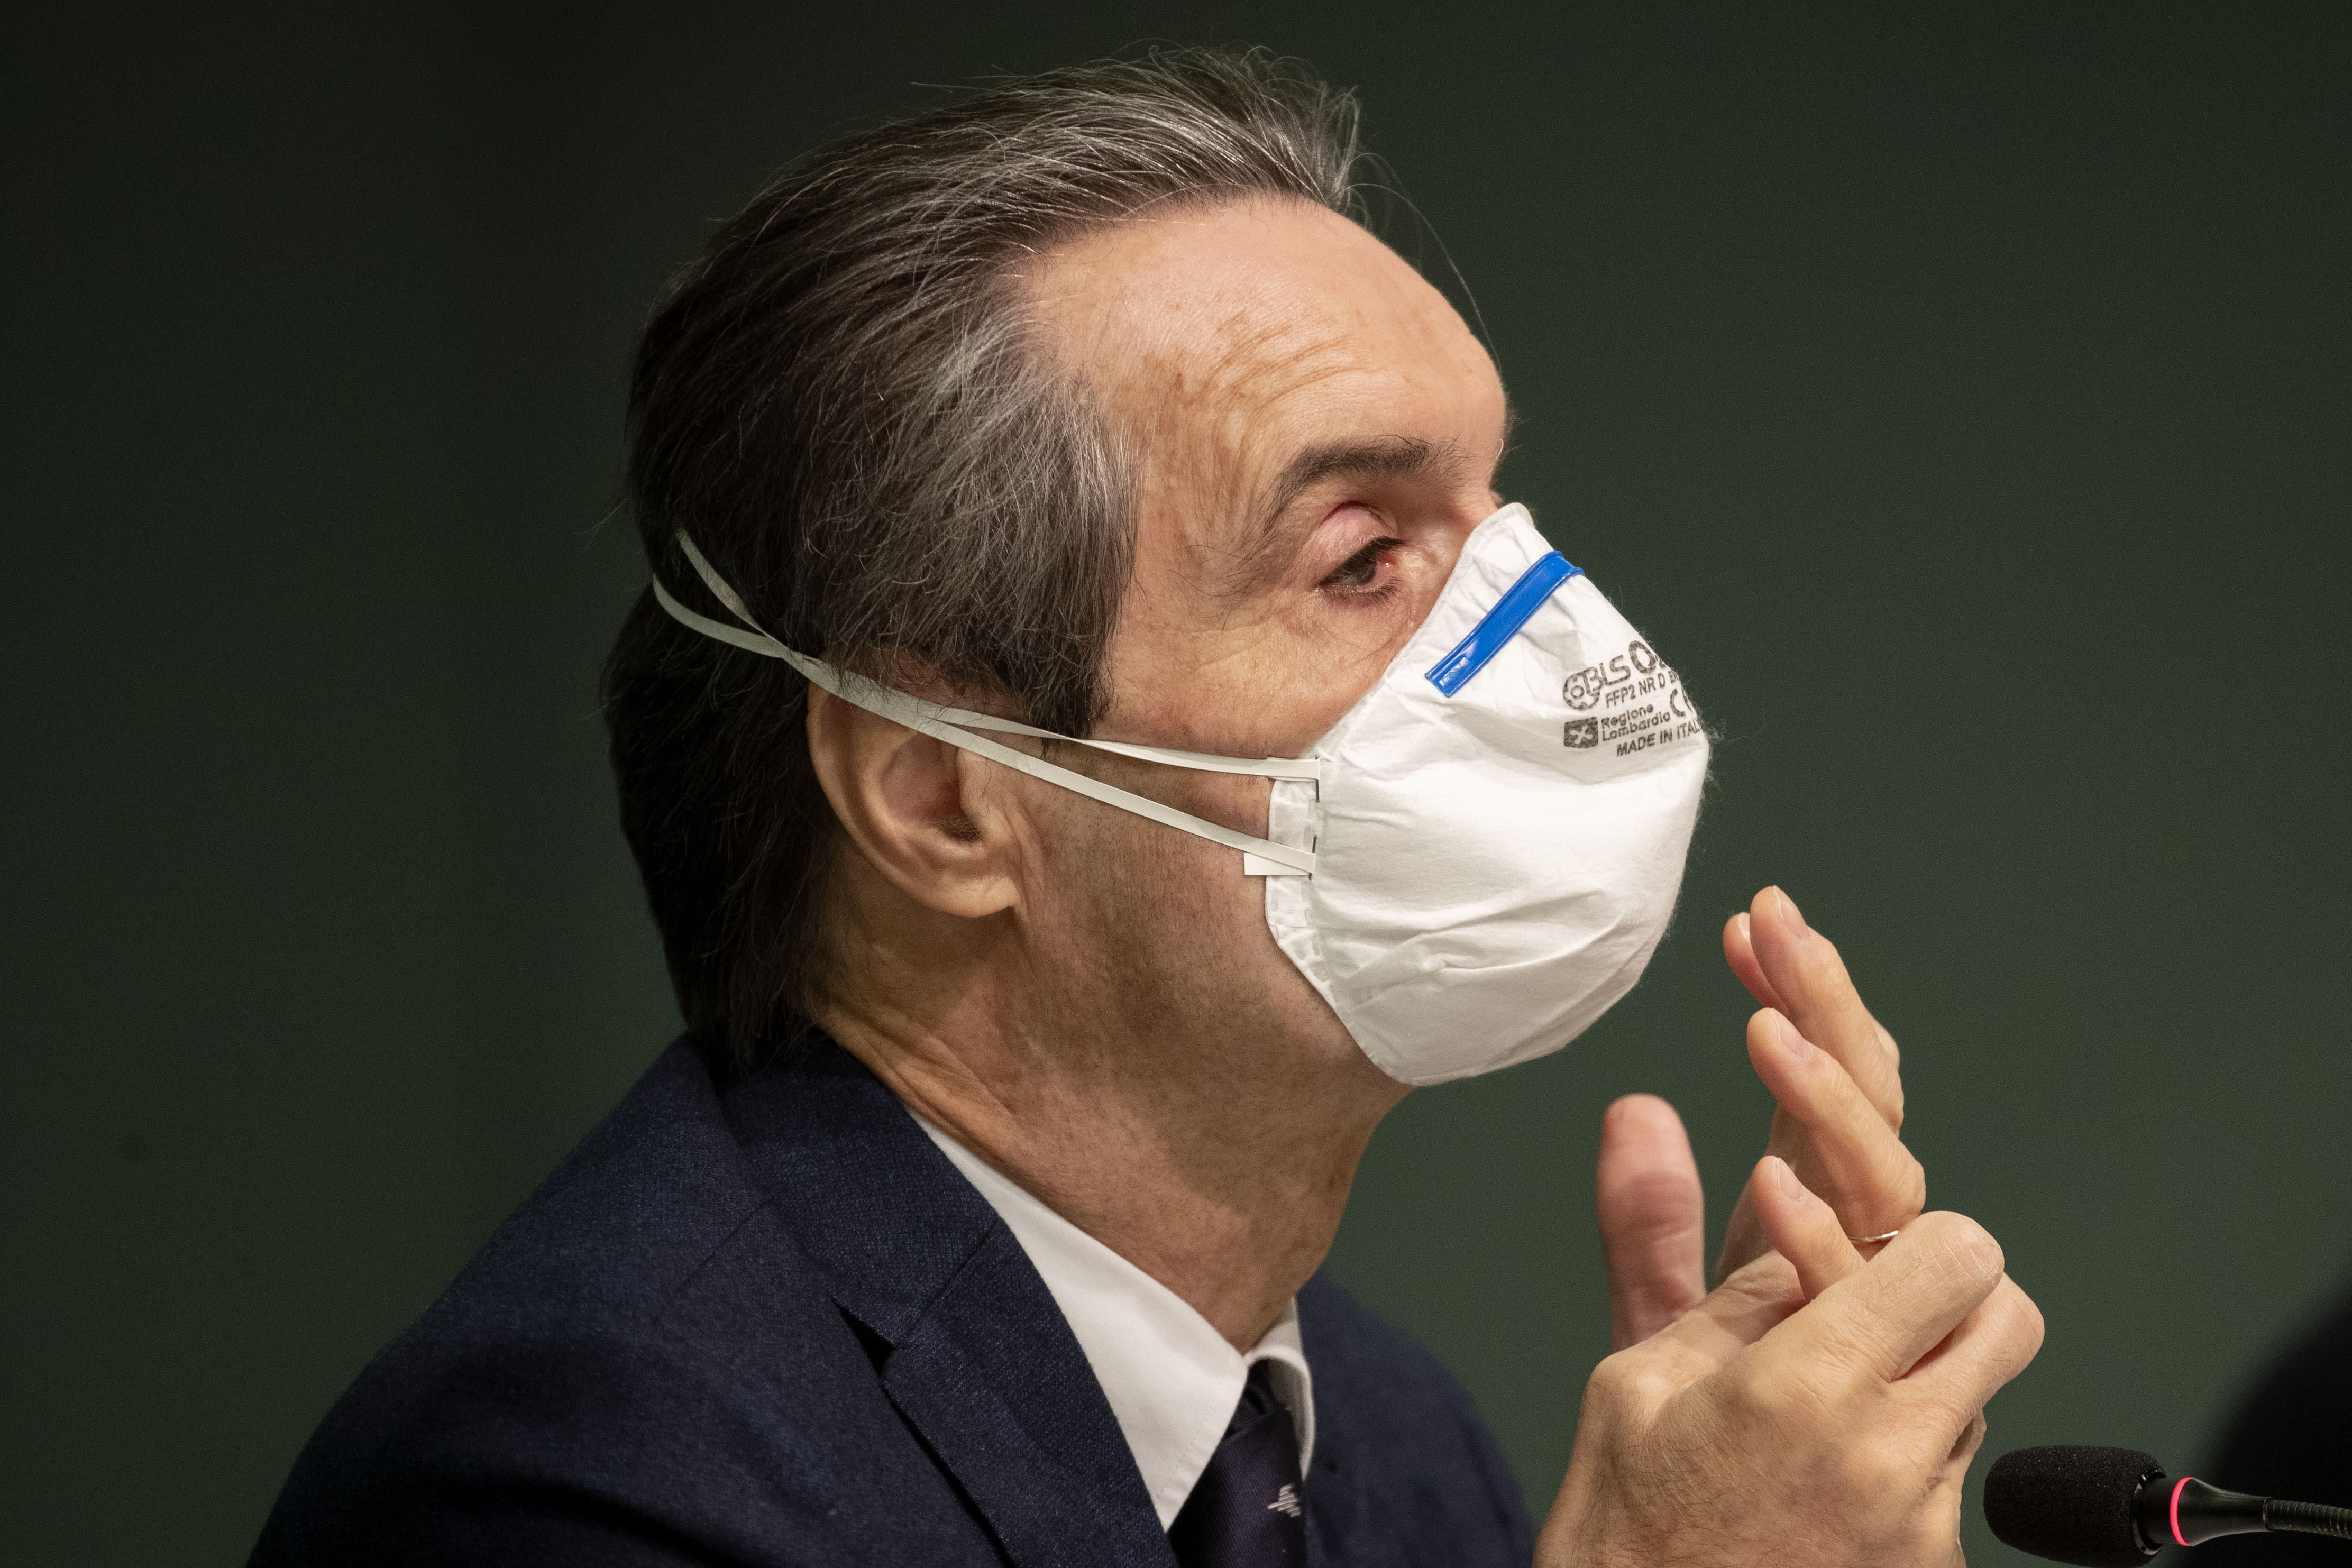 FILE -- In this March 31, 2020 file photo Lombardy region president Attilio Fontana attends a news conference to present the new Ospedale Fieramilano hospital to treat coronavirus patients, in Milan, Italy. The governor of Lombardy, Italy's hardest-hit region in the pandemic, acknowledged on Saturday that he is being investigated by Milan prosecutors over a lucrative contract to obtain protective medical gowns from his brother-in-law's company. (AP Photo/Luca Bruno)